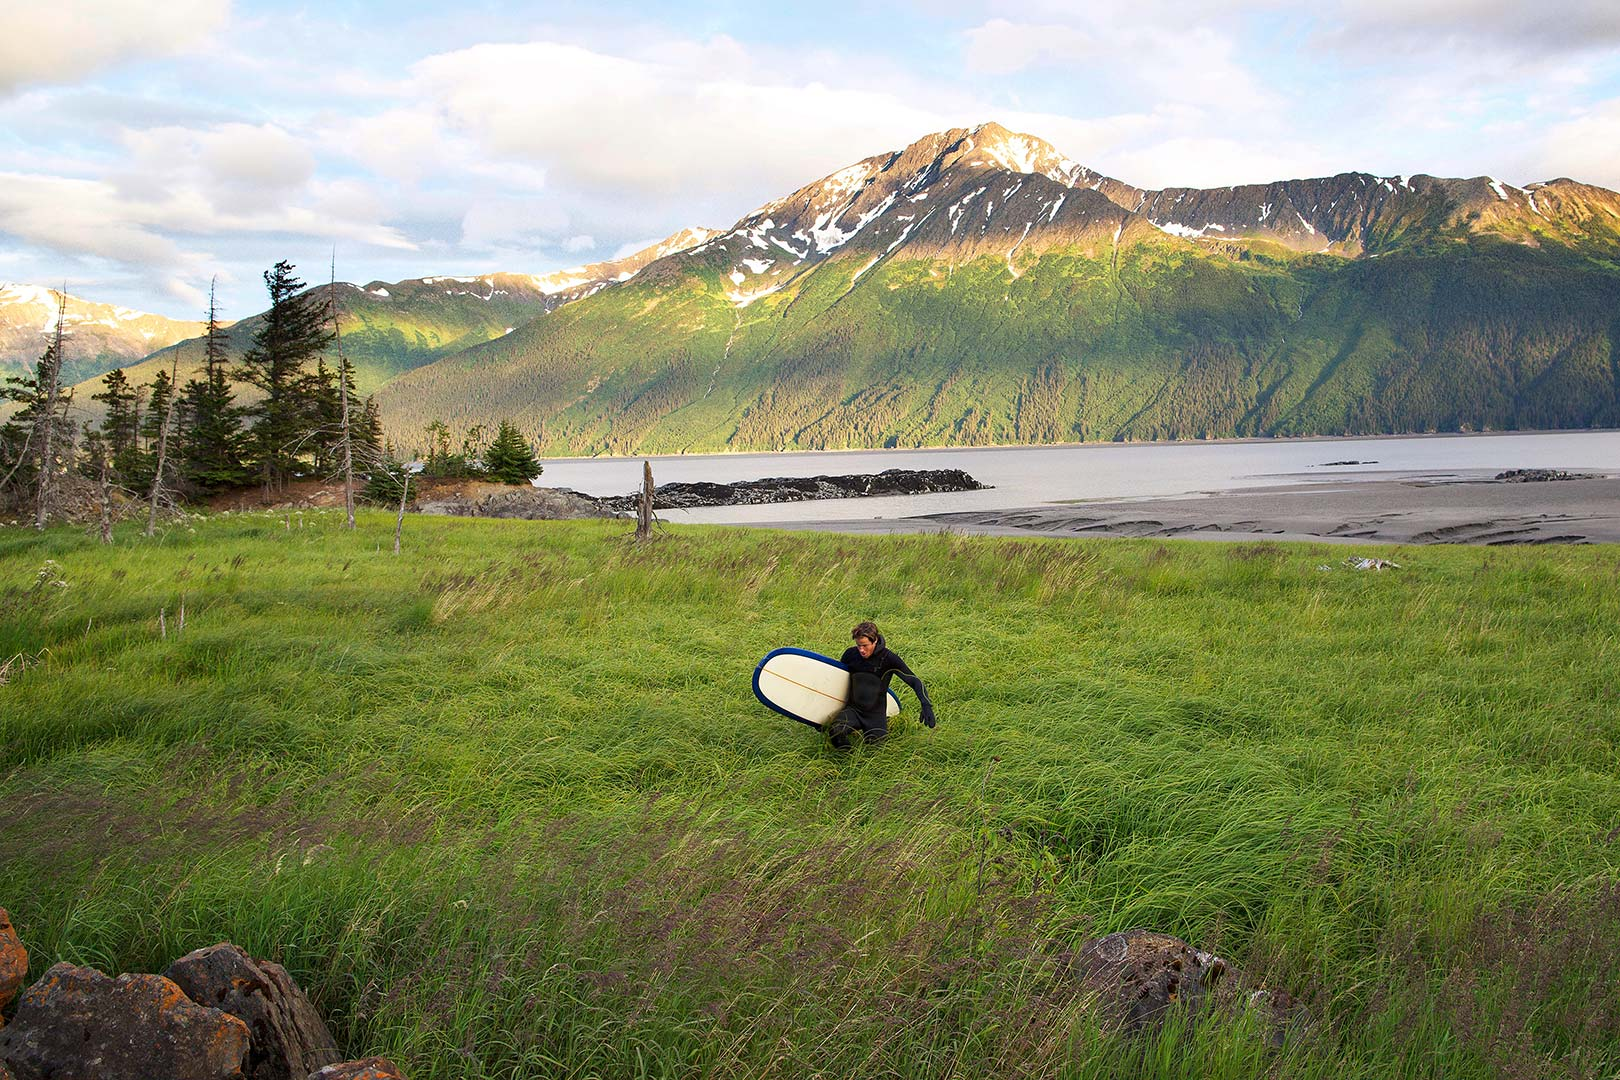 Picture of a surfer near Turnagain Arm, Anchorage, Alaska